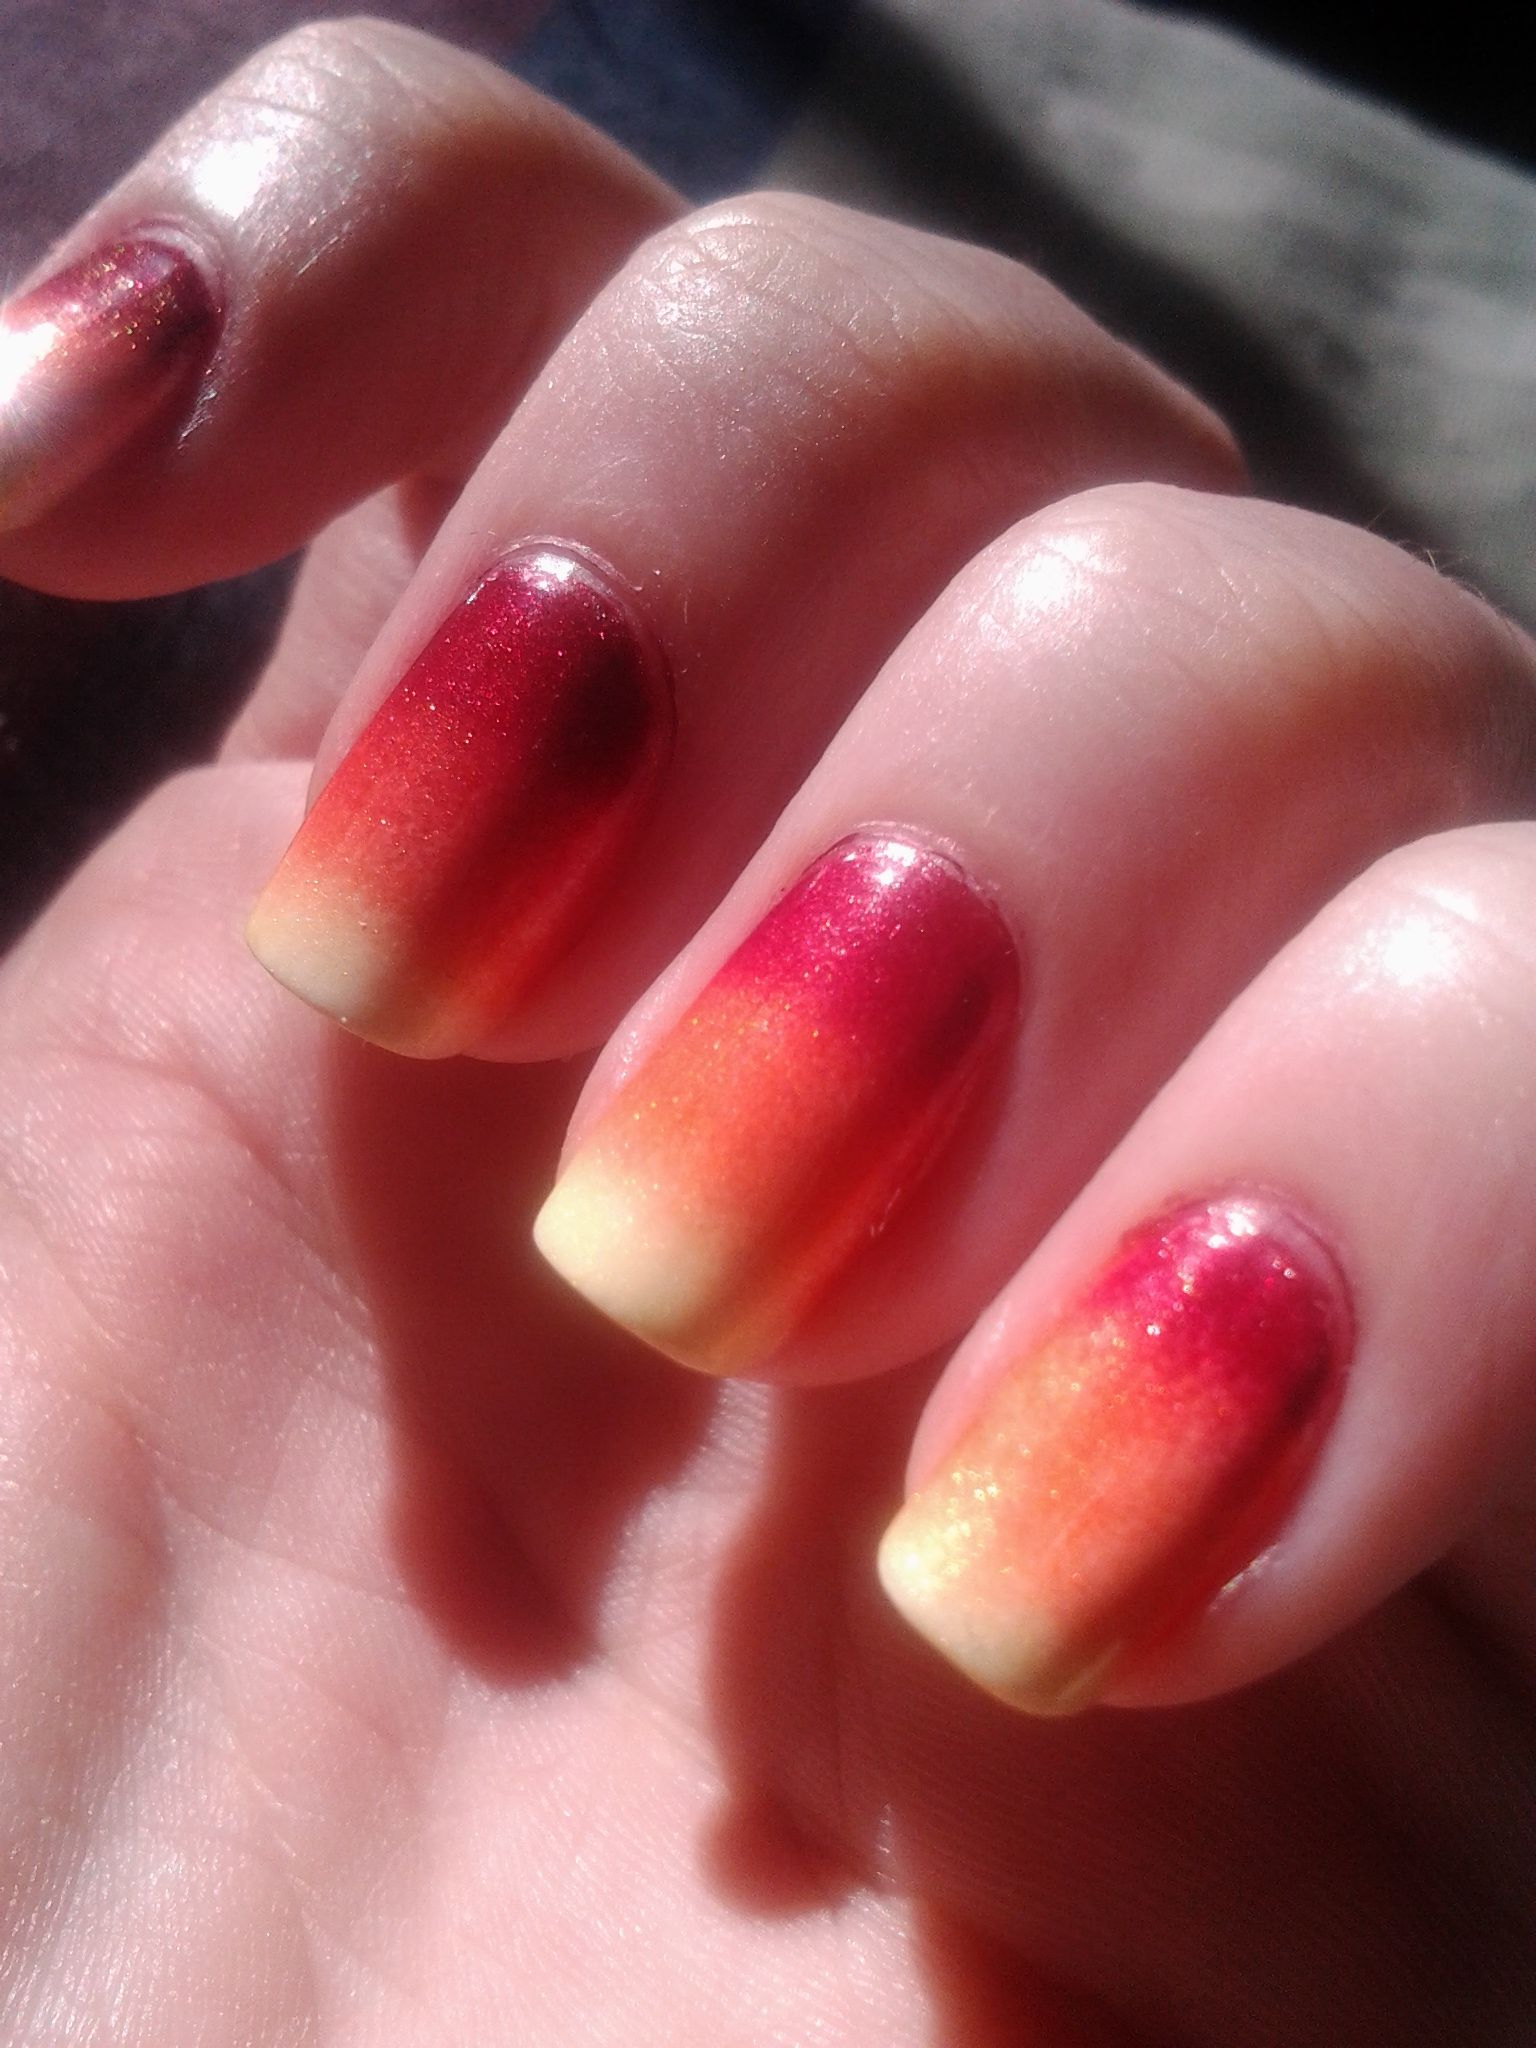 Fiery Nails..Used 4 Products.. NINE ULTRA PRO Nail Enamel in Evening ...